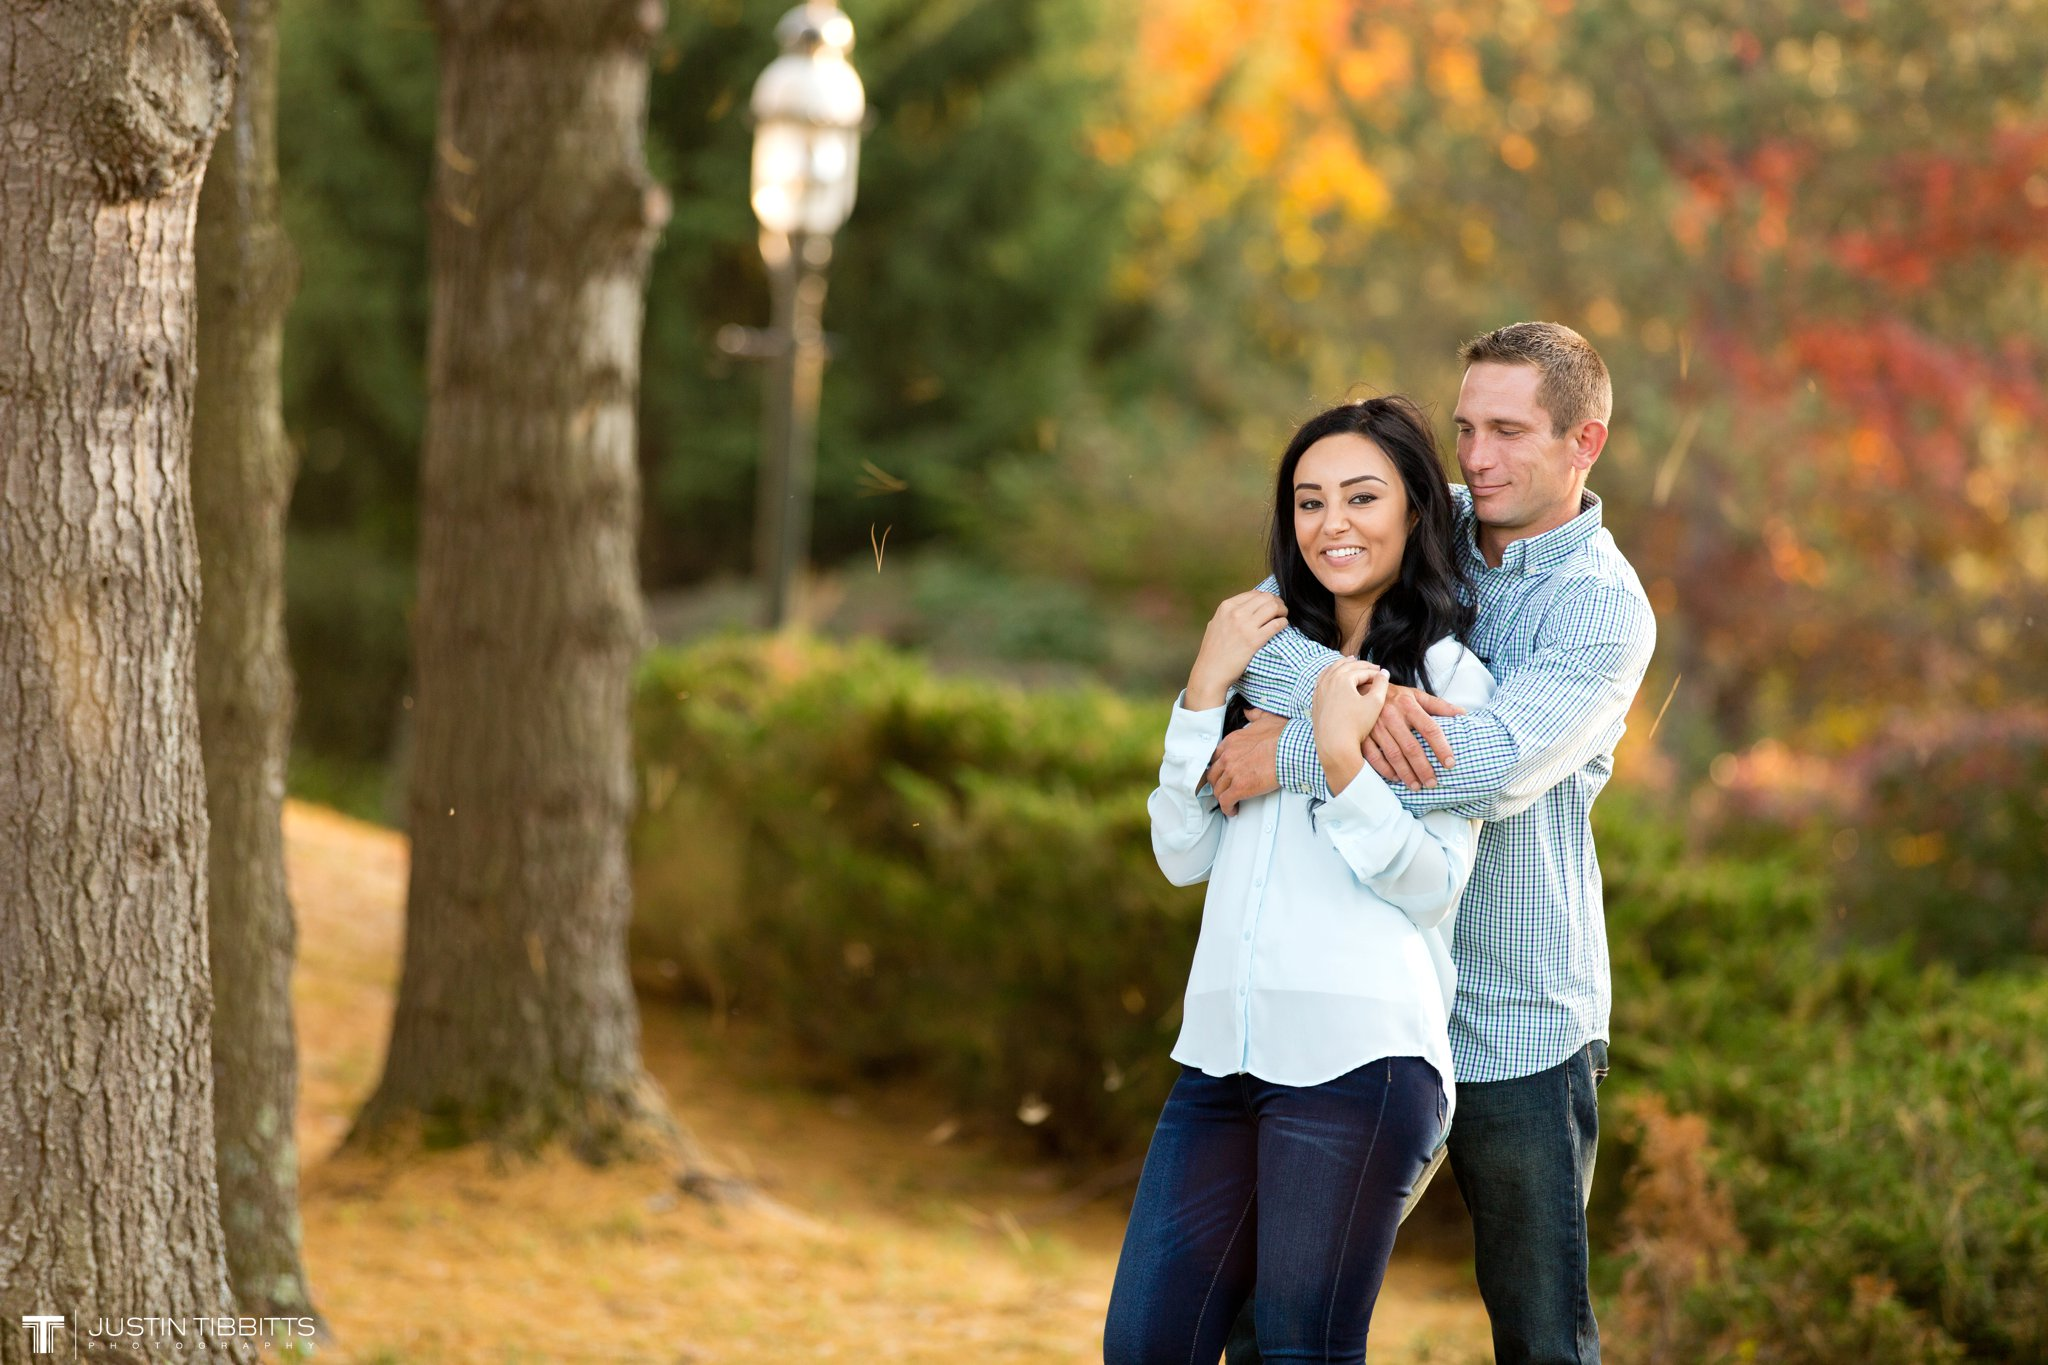 sagamore-engagement-photos-by-justin-tibbitts-photography-with-laina-and-mike_0021